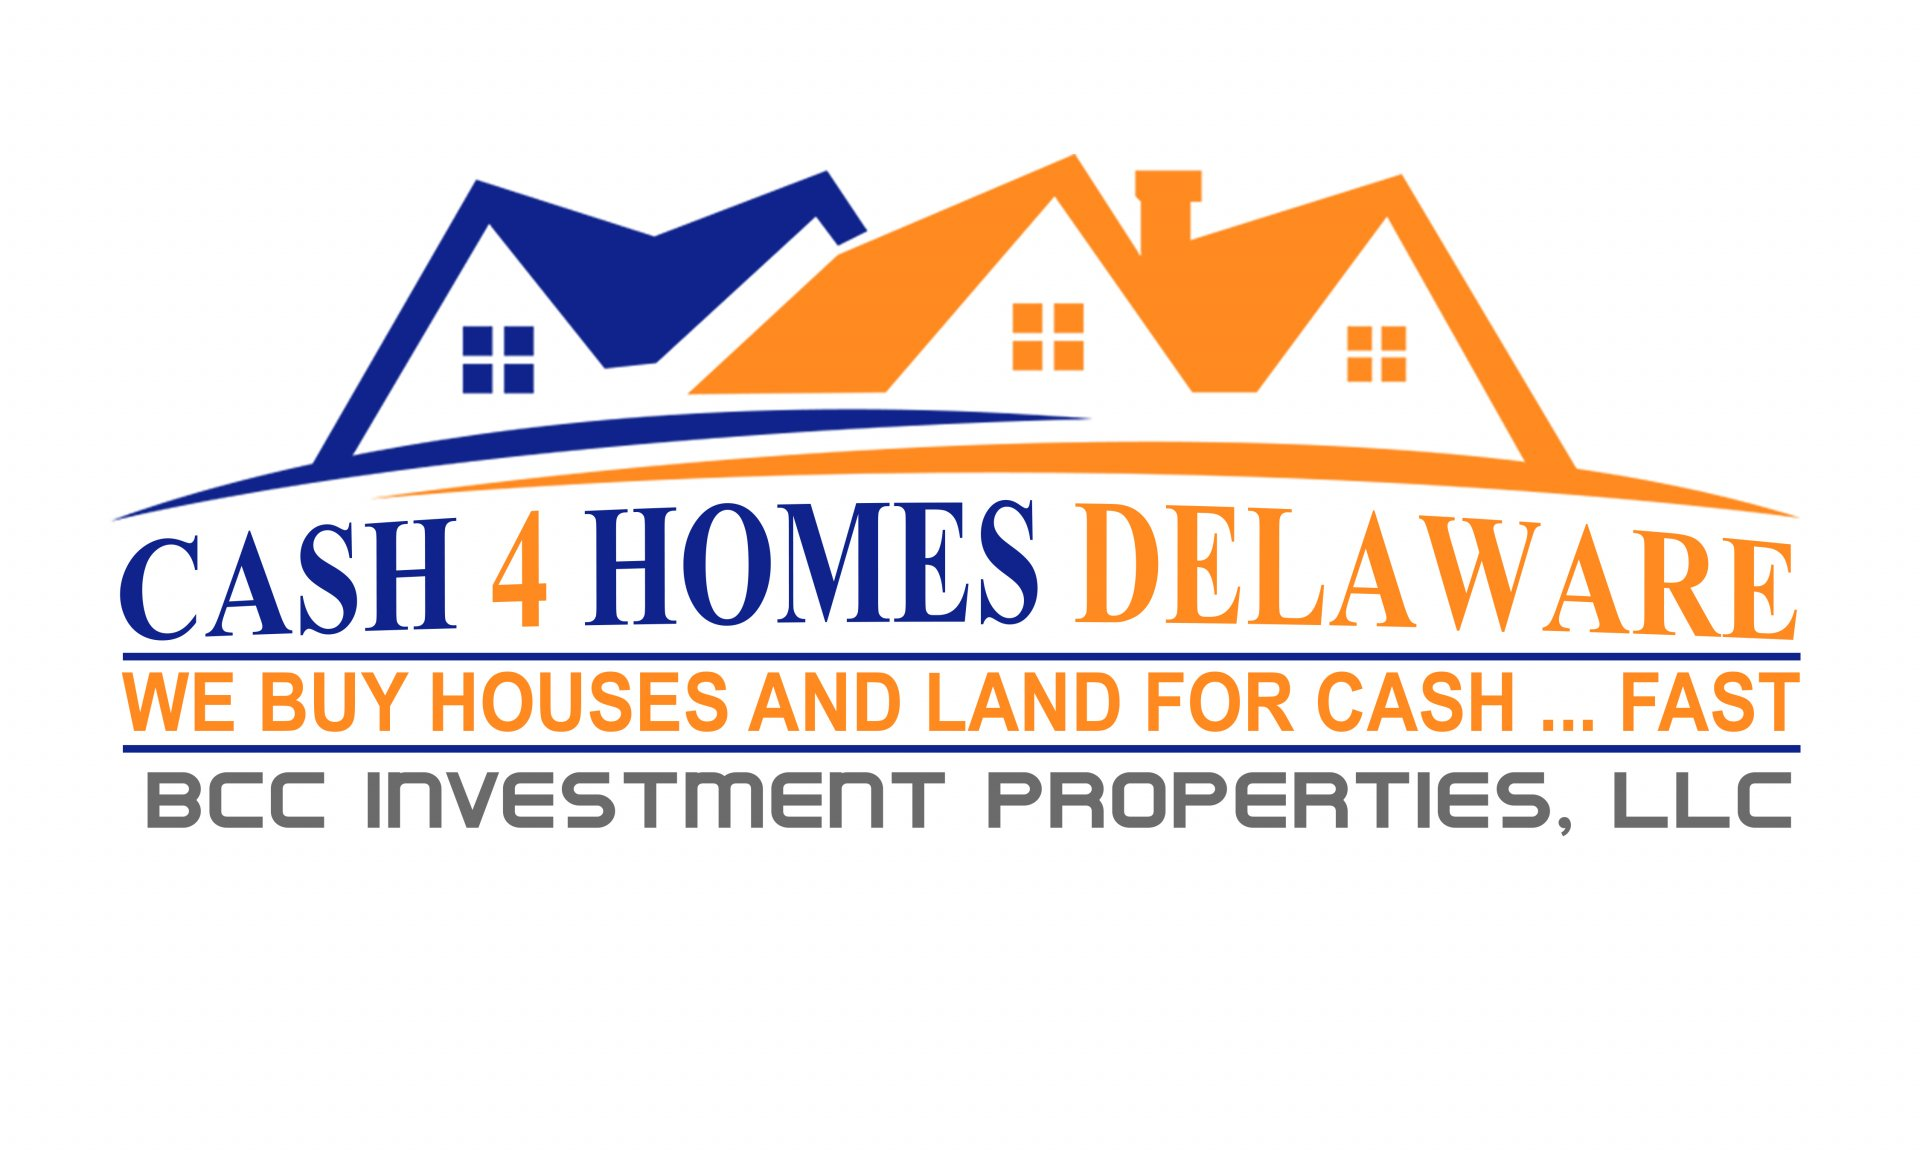 Cash 4 Homes Delaware logo